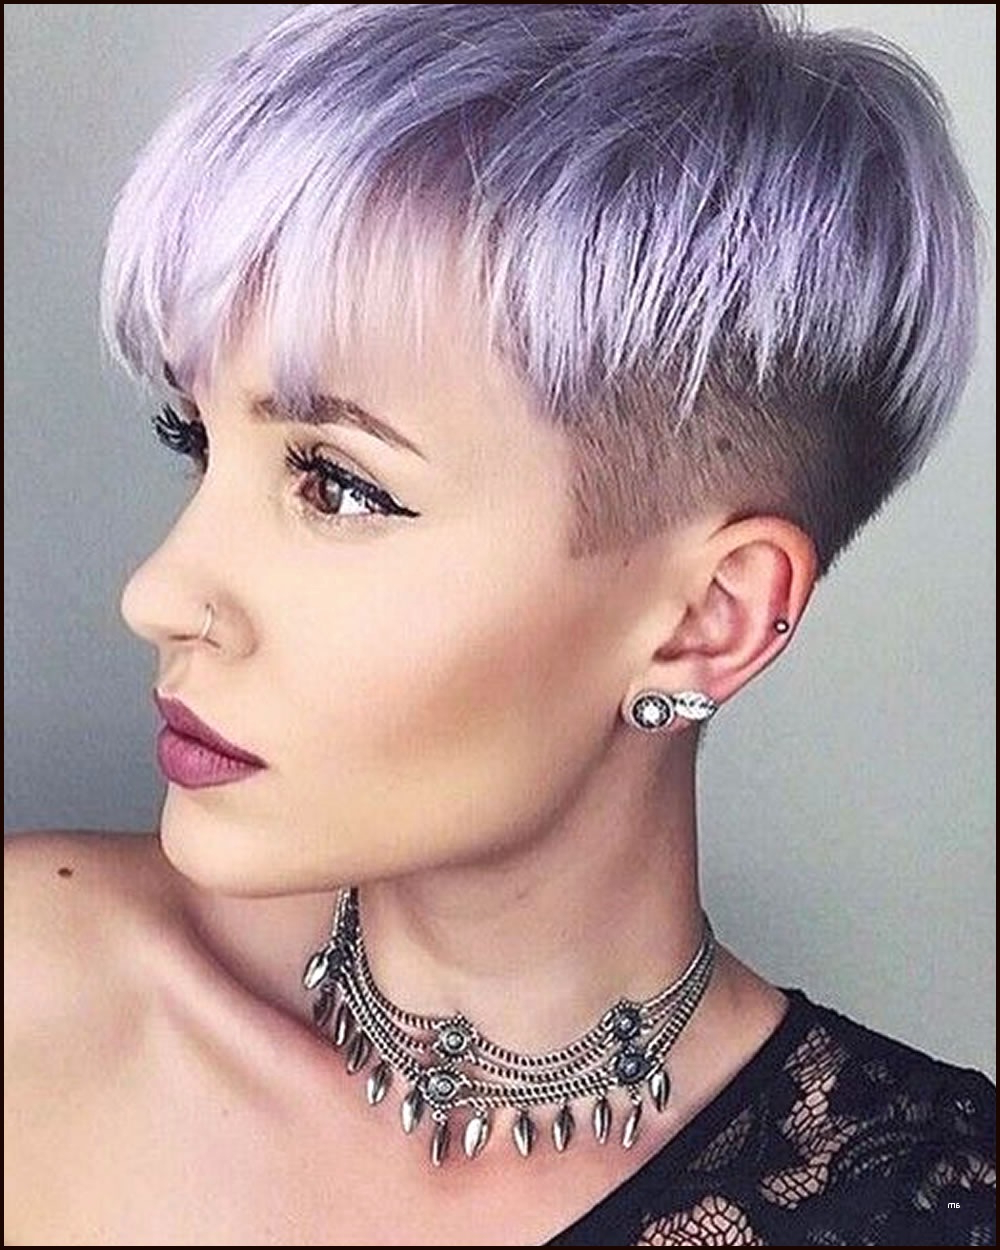 67 New Images Of Short Hairstyles For Women | Hairstyles Pertaining To Feminine Short Hairstyles For Women (Gallery 18 of 25)